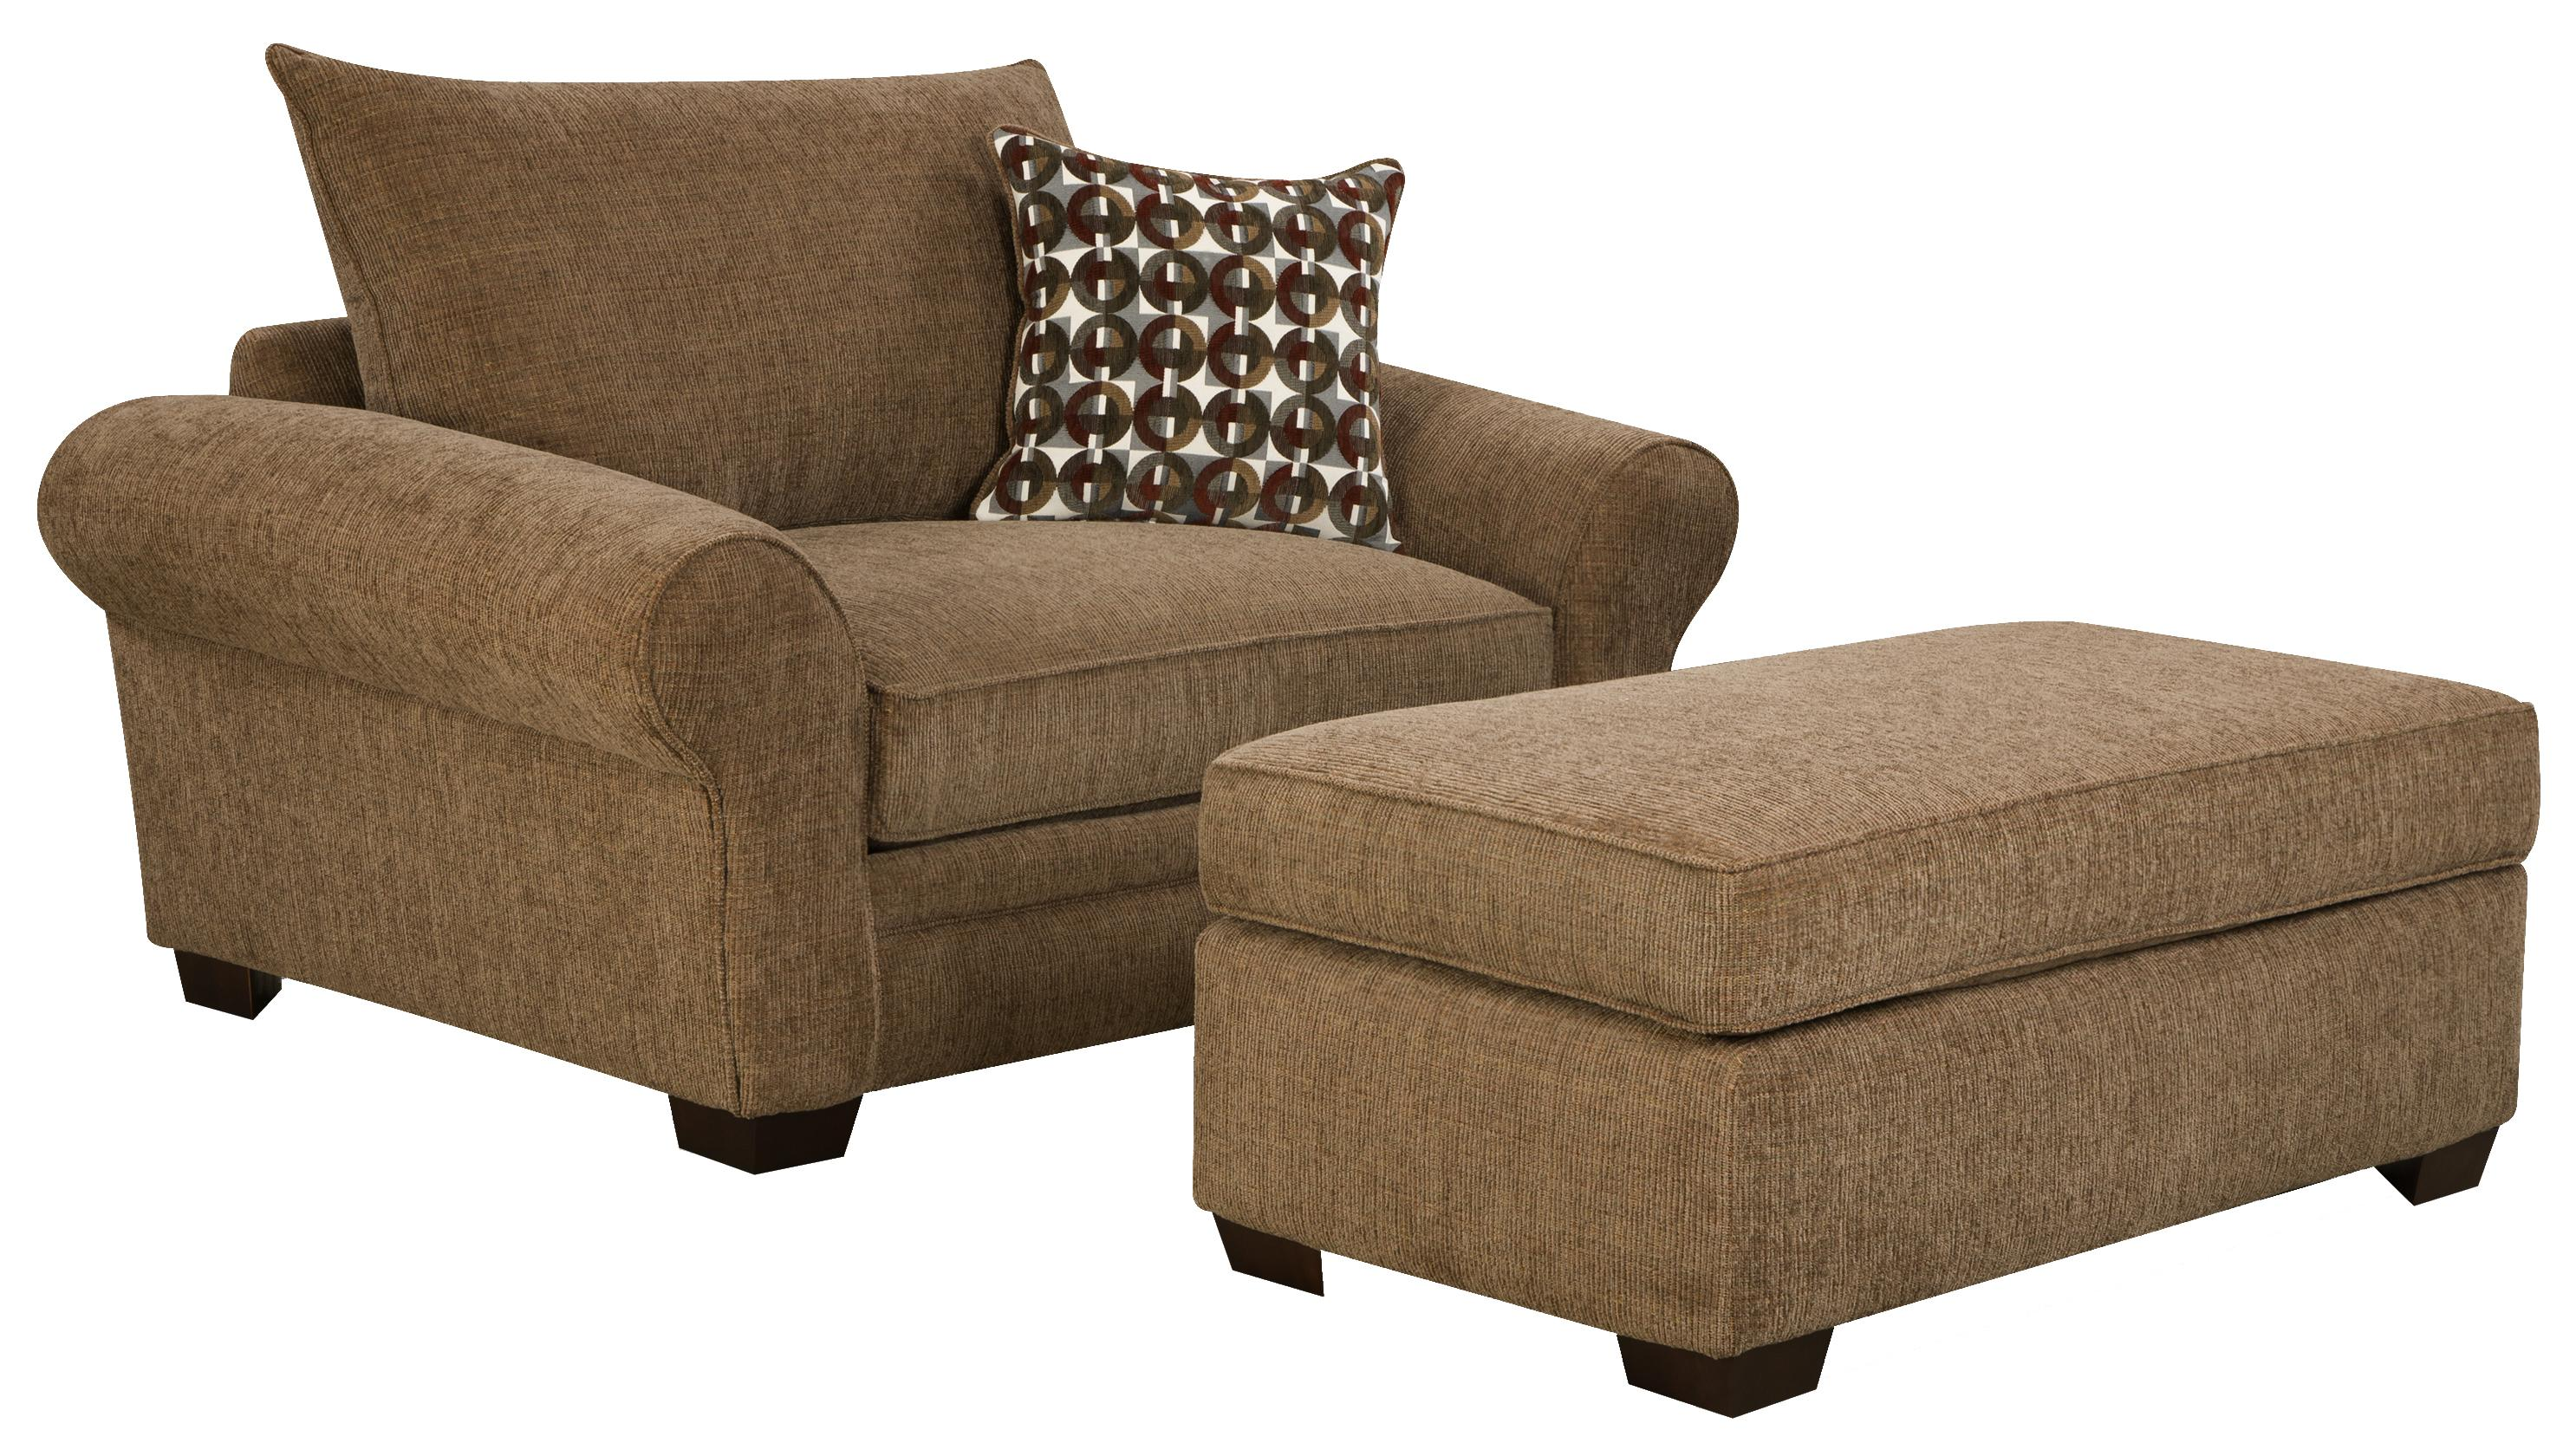 extra wide living room chair corinthian 5460 large chair and a half amp ottoman set 20777